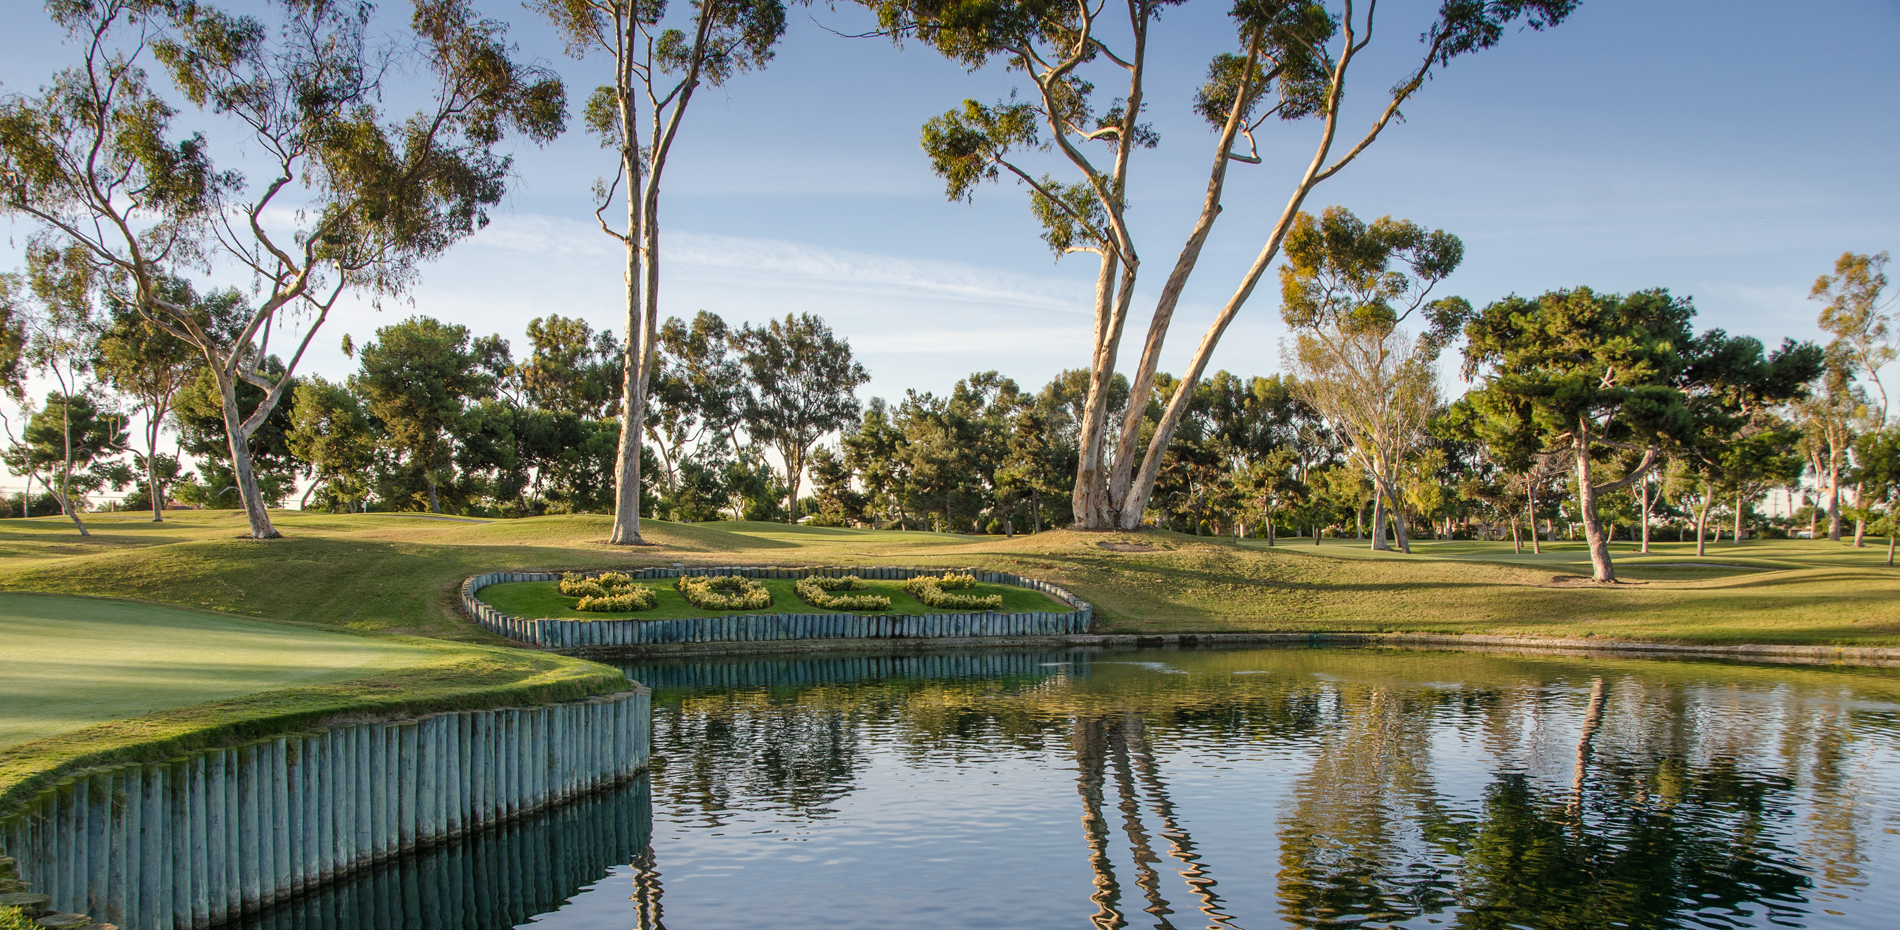 singles golf clubs san diego Besides being one of the best 9 hole par 3 golf courses in san diego, sail ho golf club is one of the most historical golf courses in san diego.